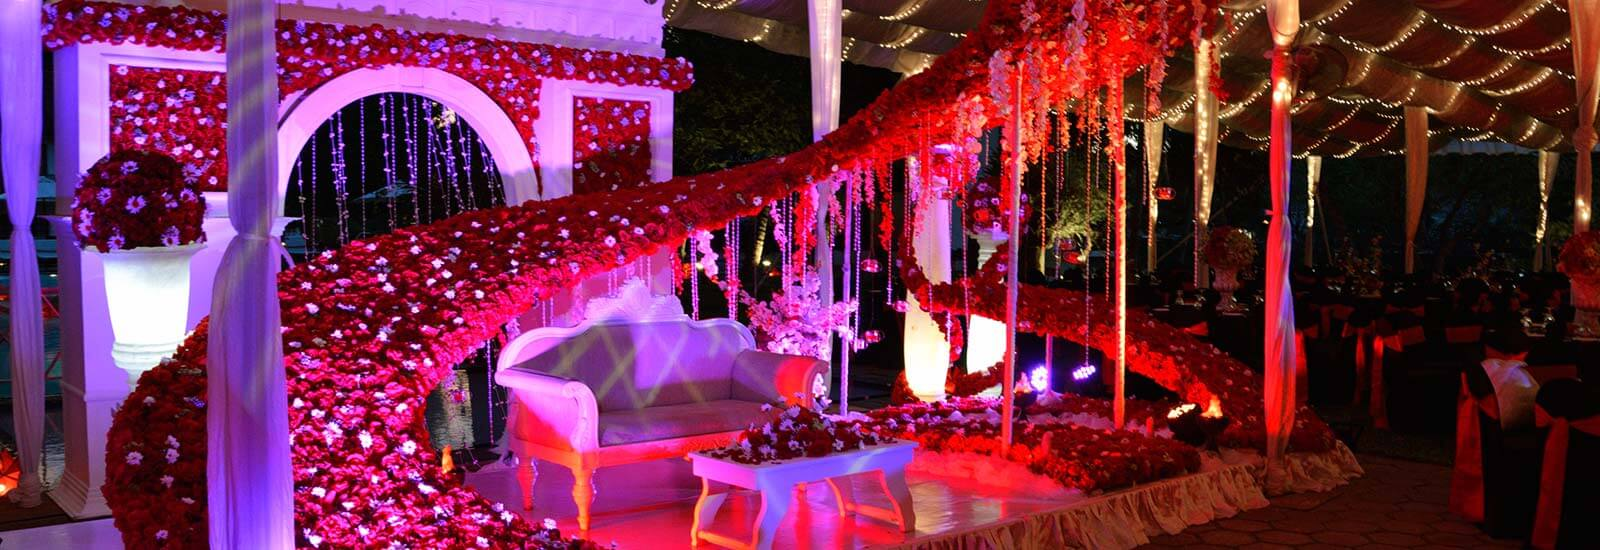 Night Wedding Decorations at Mahaweli Reach Hotel